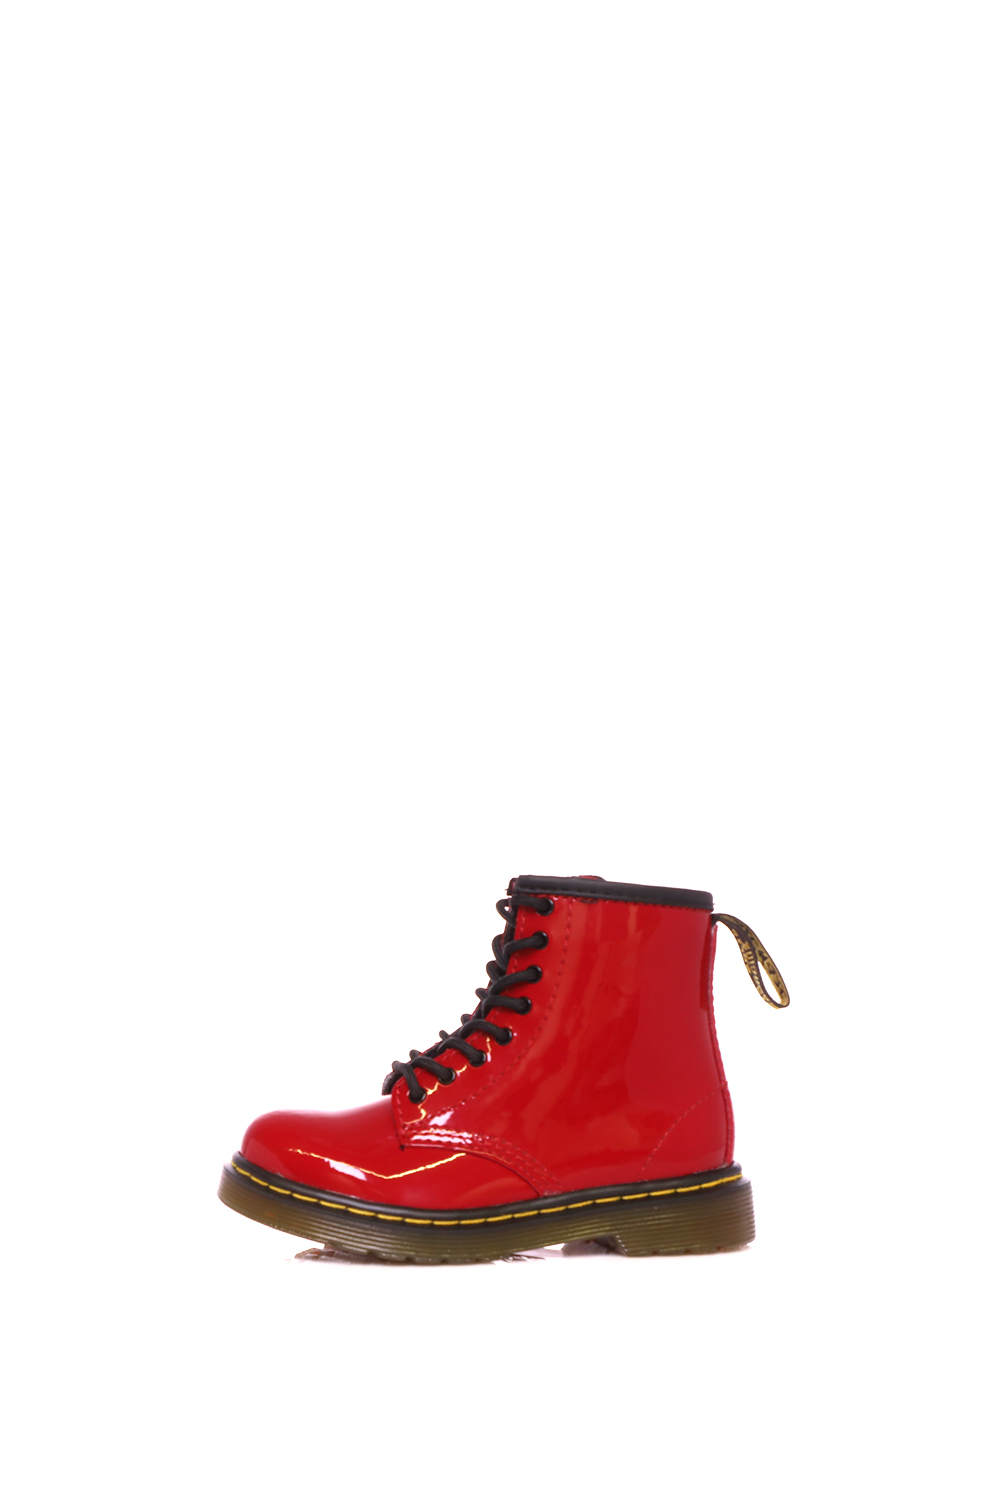 DR.MARTENS – Παιδικά μποτάκια DR.MARTENS Brooklee Infants Lace Boot κόκκινα